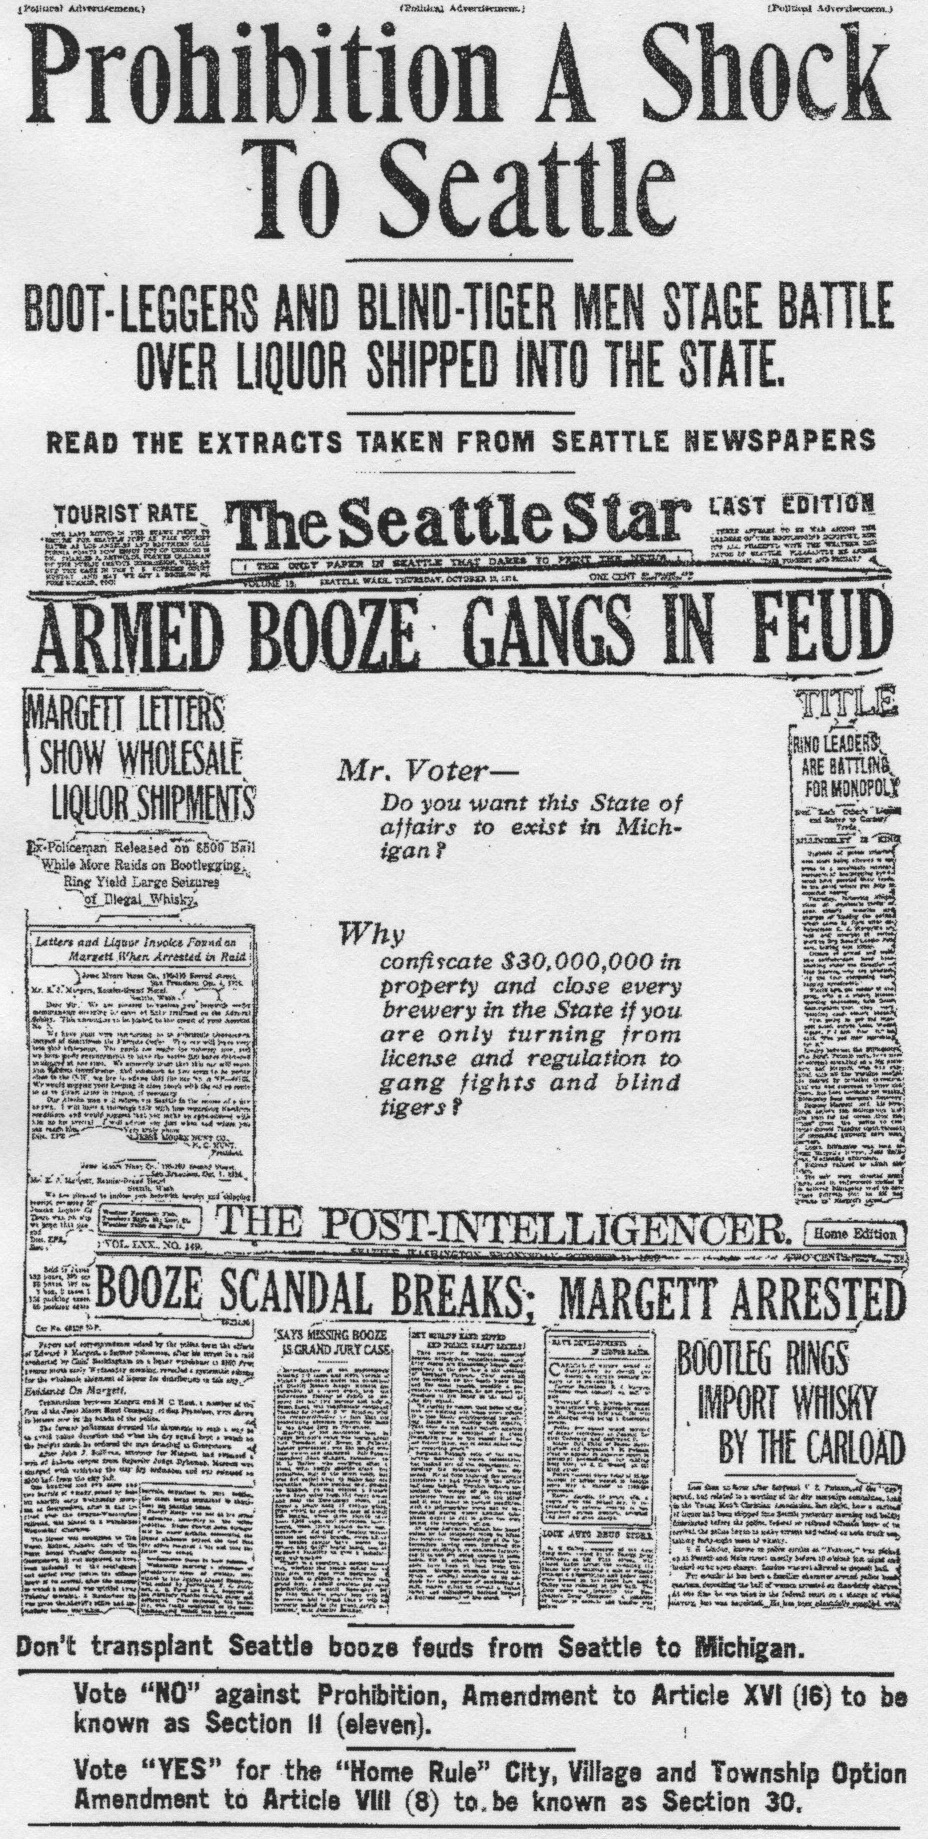 http://www.historygrandrapids.org/imgs/1516/full/ProhibitionSeattle.jpg